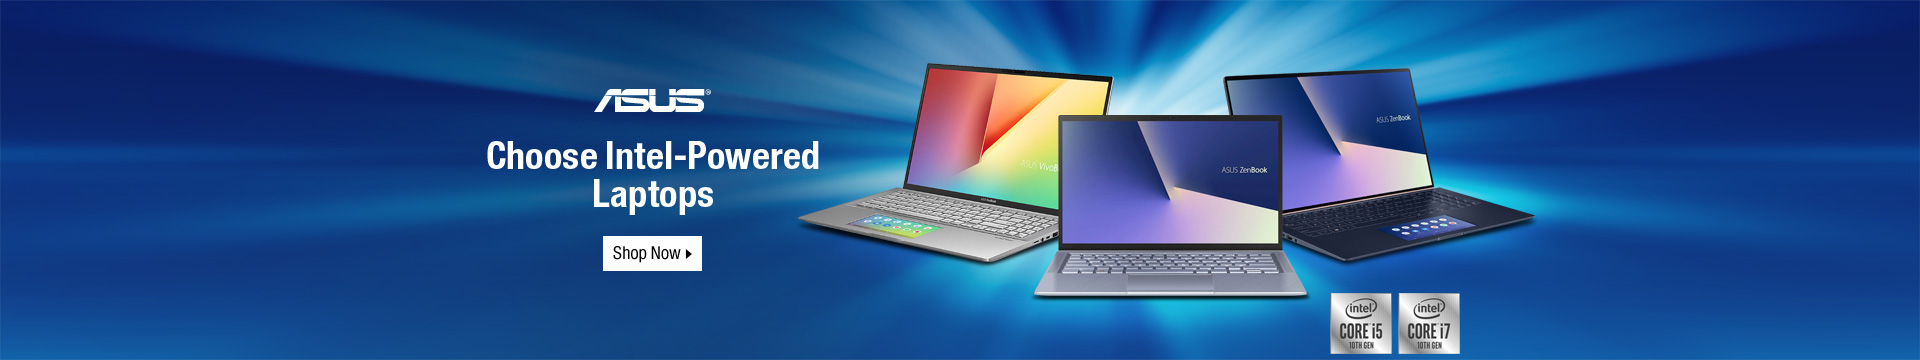 Choose Intel-powered laptops